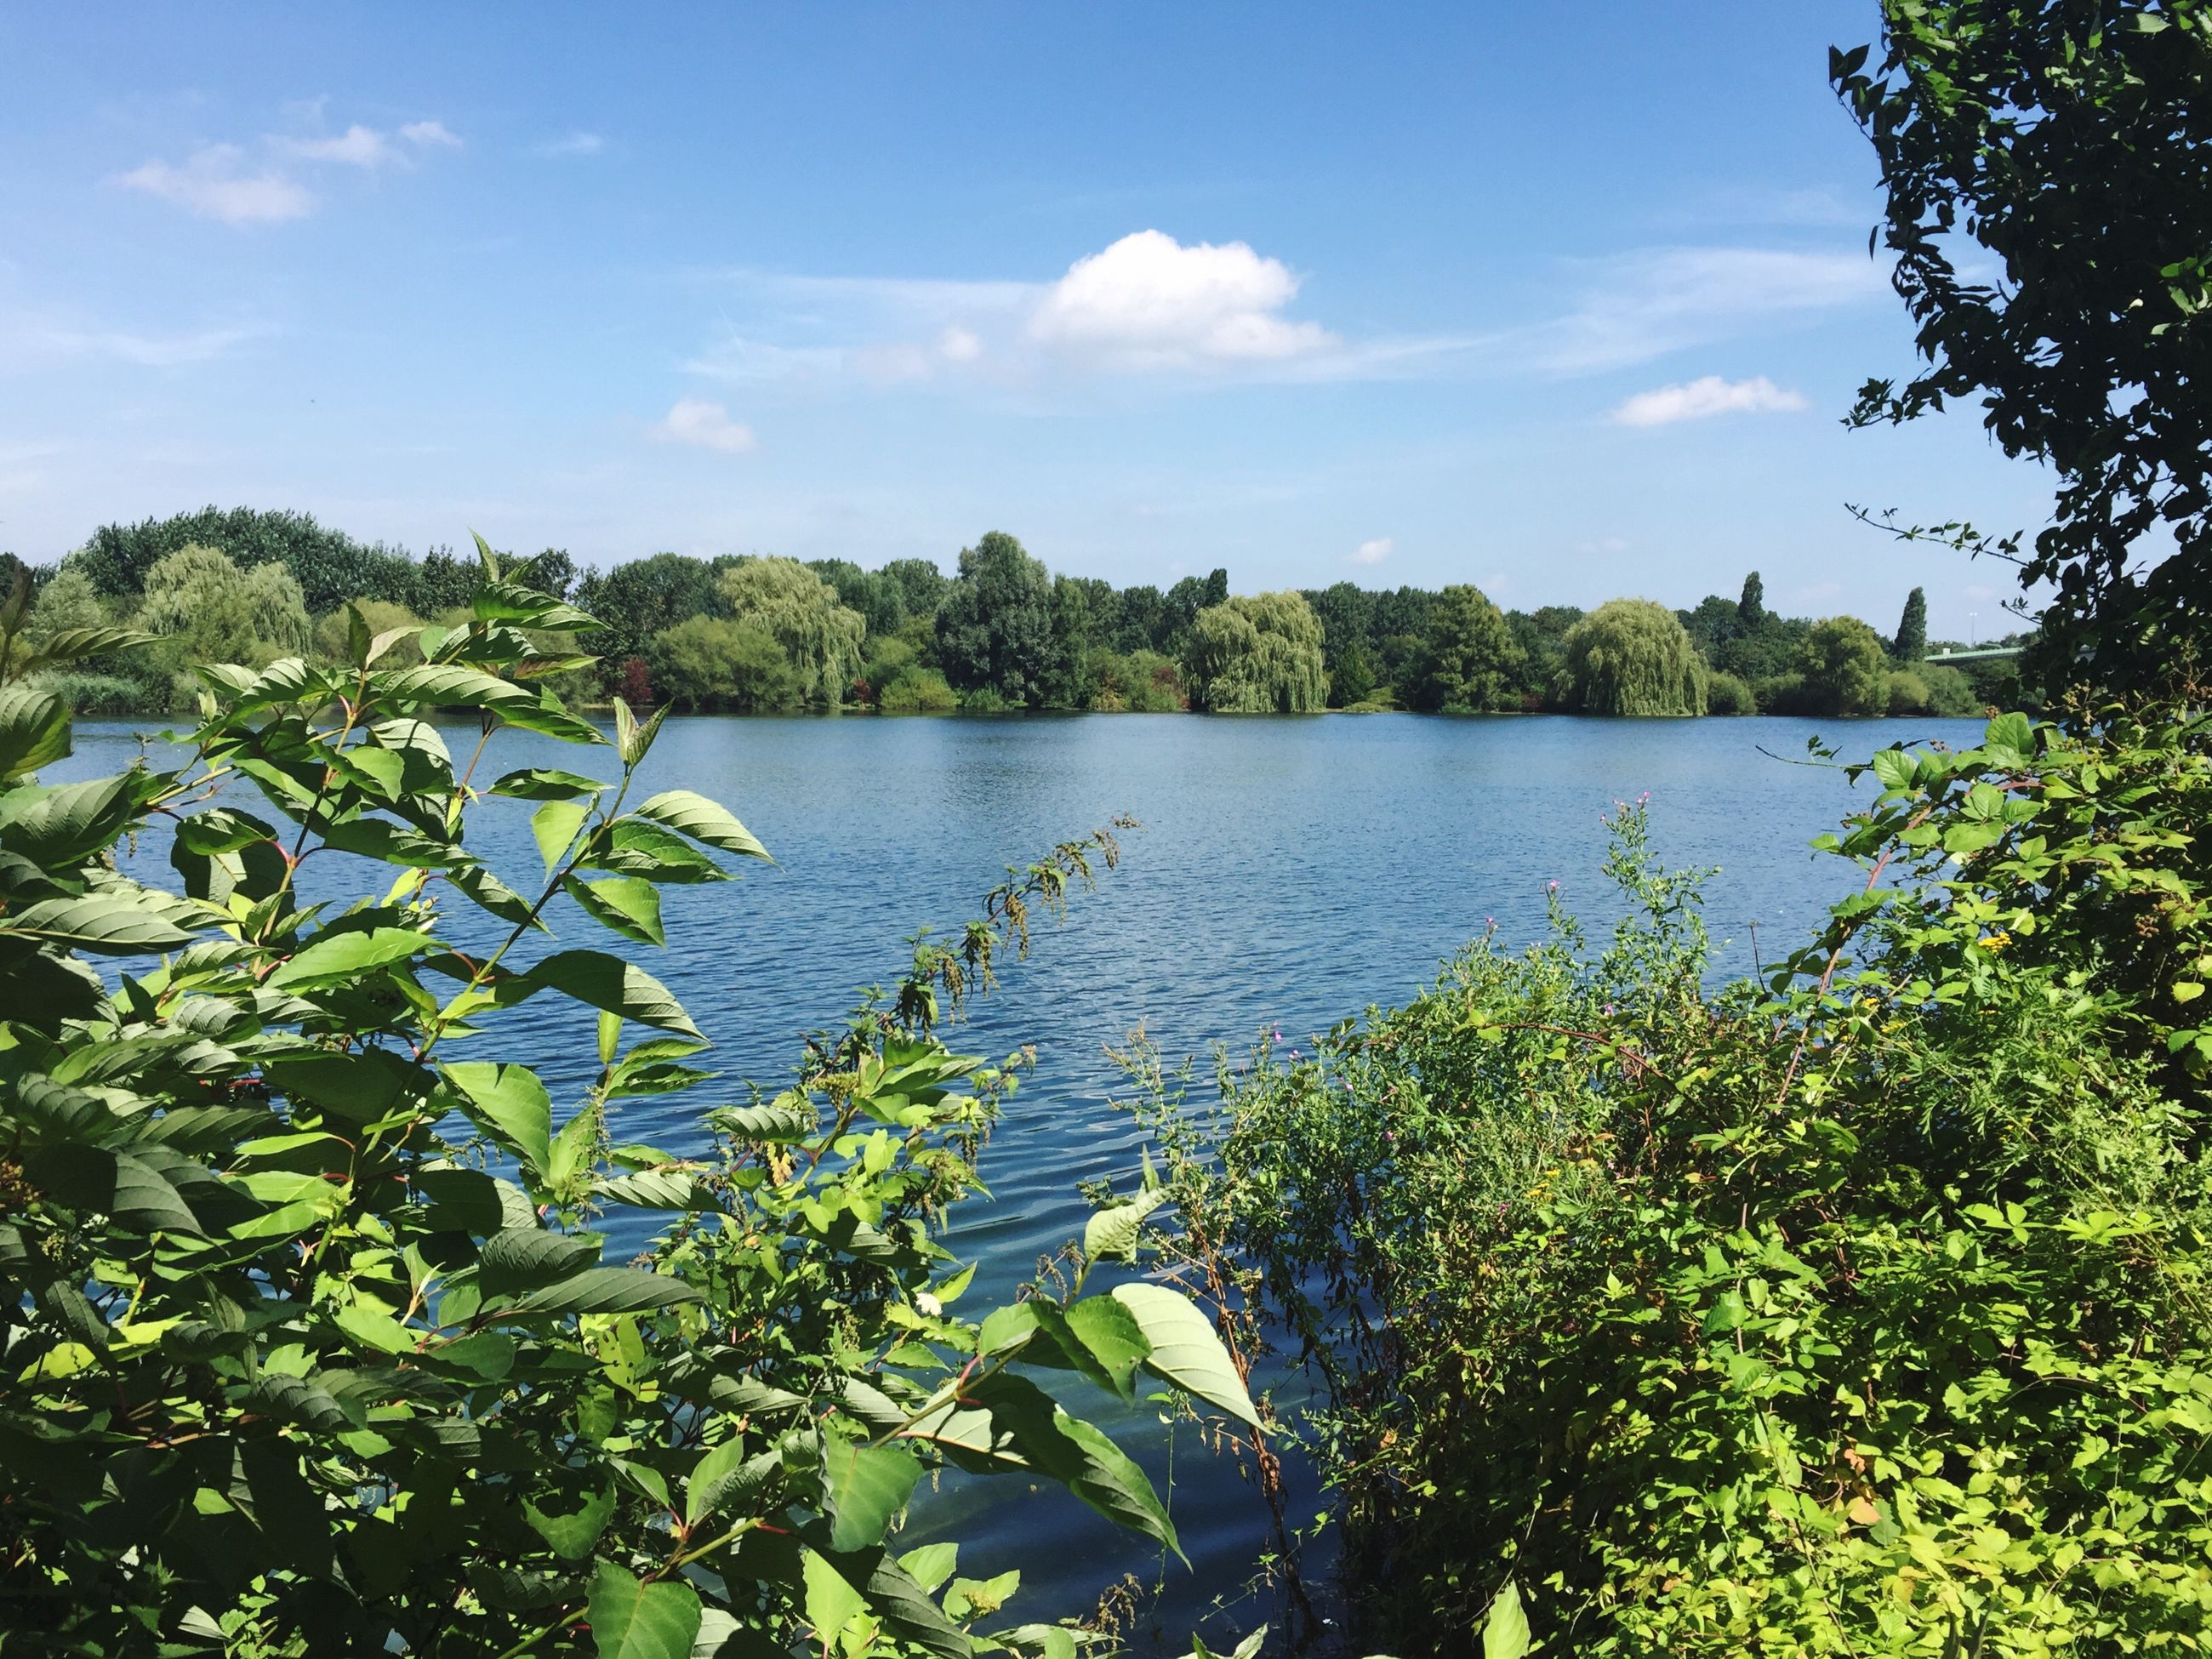 growth, water, nature, tree, sky, reflection, beauty in nature, scenics, tranquility, tranquil scene, lake, plant, day, no people, outdoors